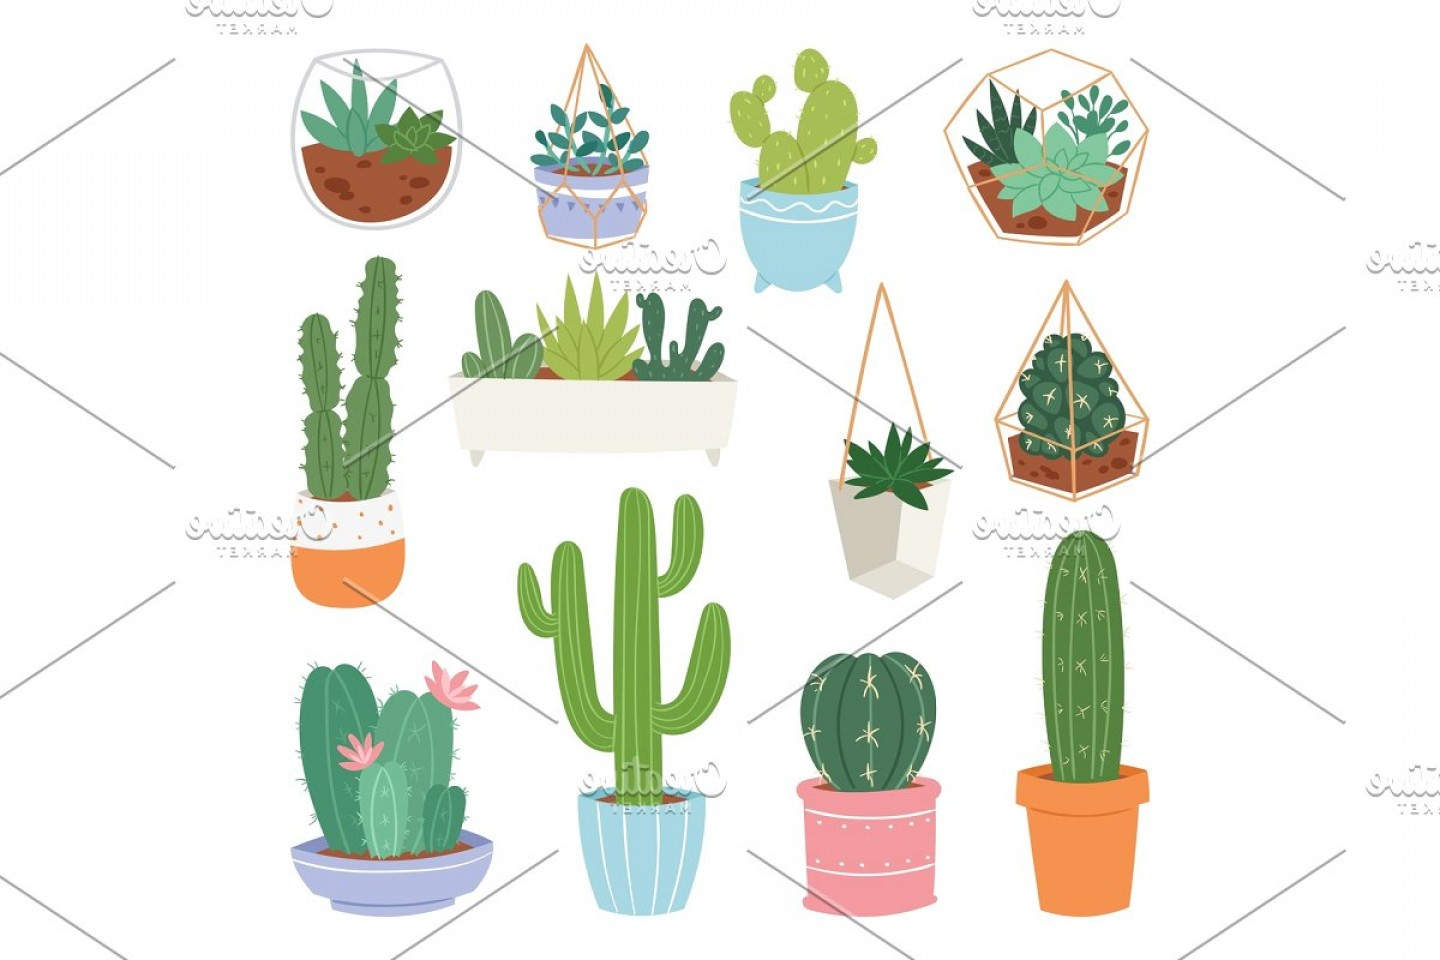 Potted Cactus Plant Vector: Cactus Vector Cartoon Botanical Cacti Potted Cute Cactaceous Succulent Plant Botany Illustration Isolated On White Background